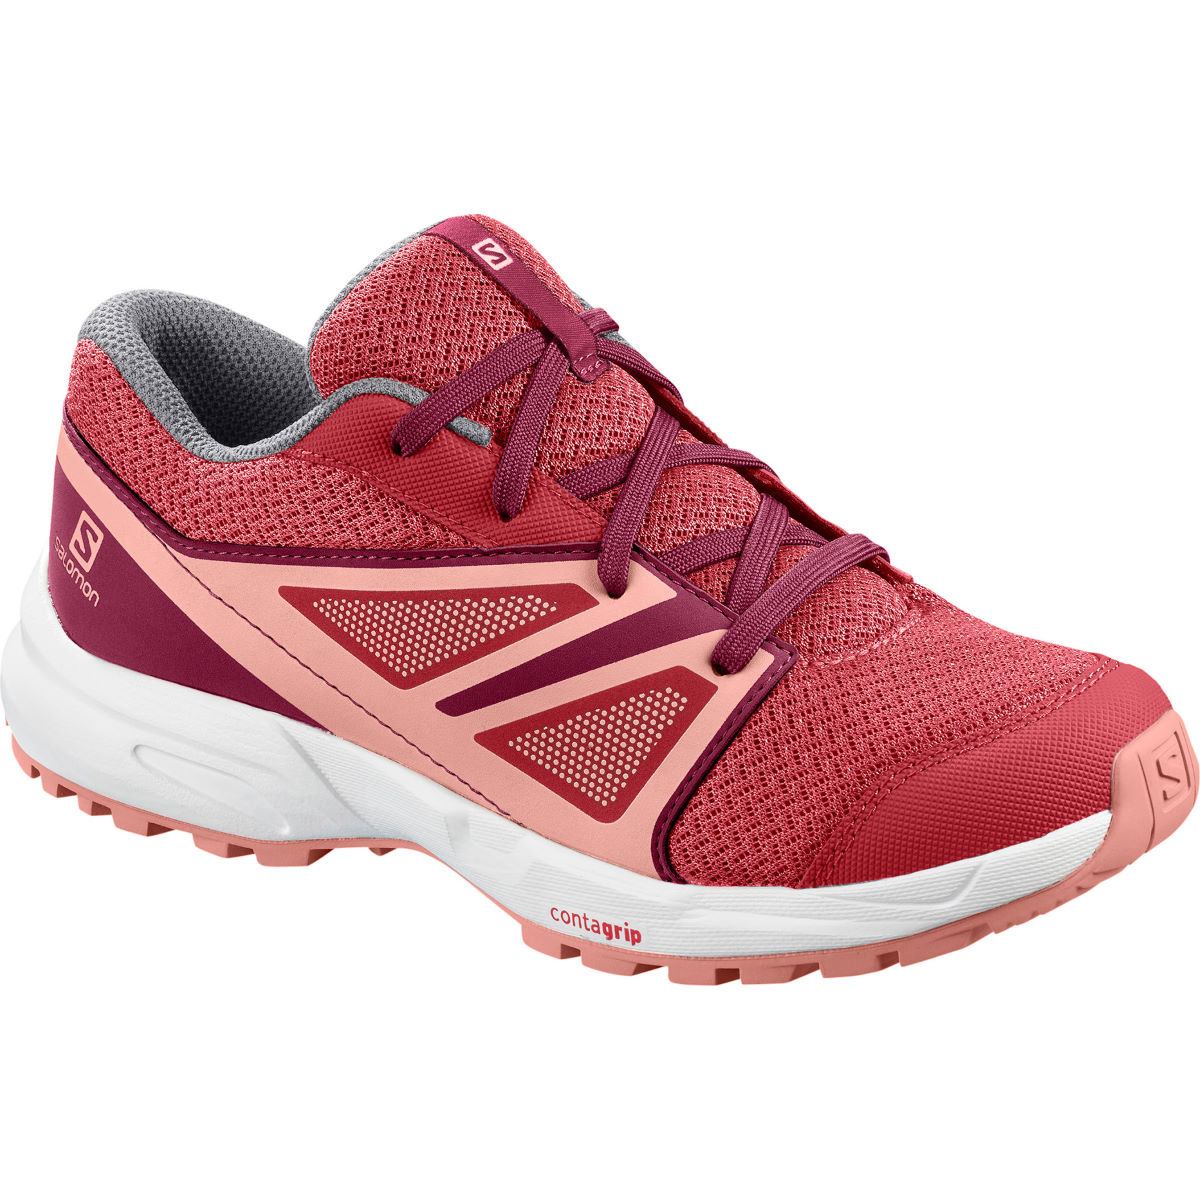 Salomon Kids Sense Shoes - 2.5 Garnet Rose/ Beet Re  Running Shoes